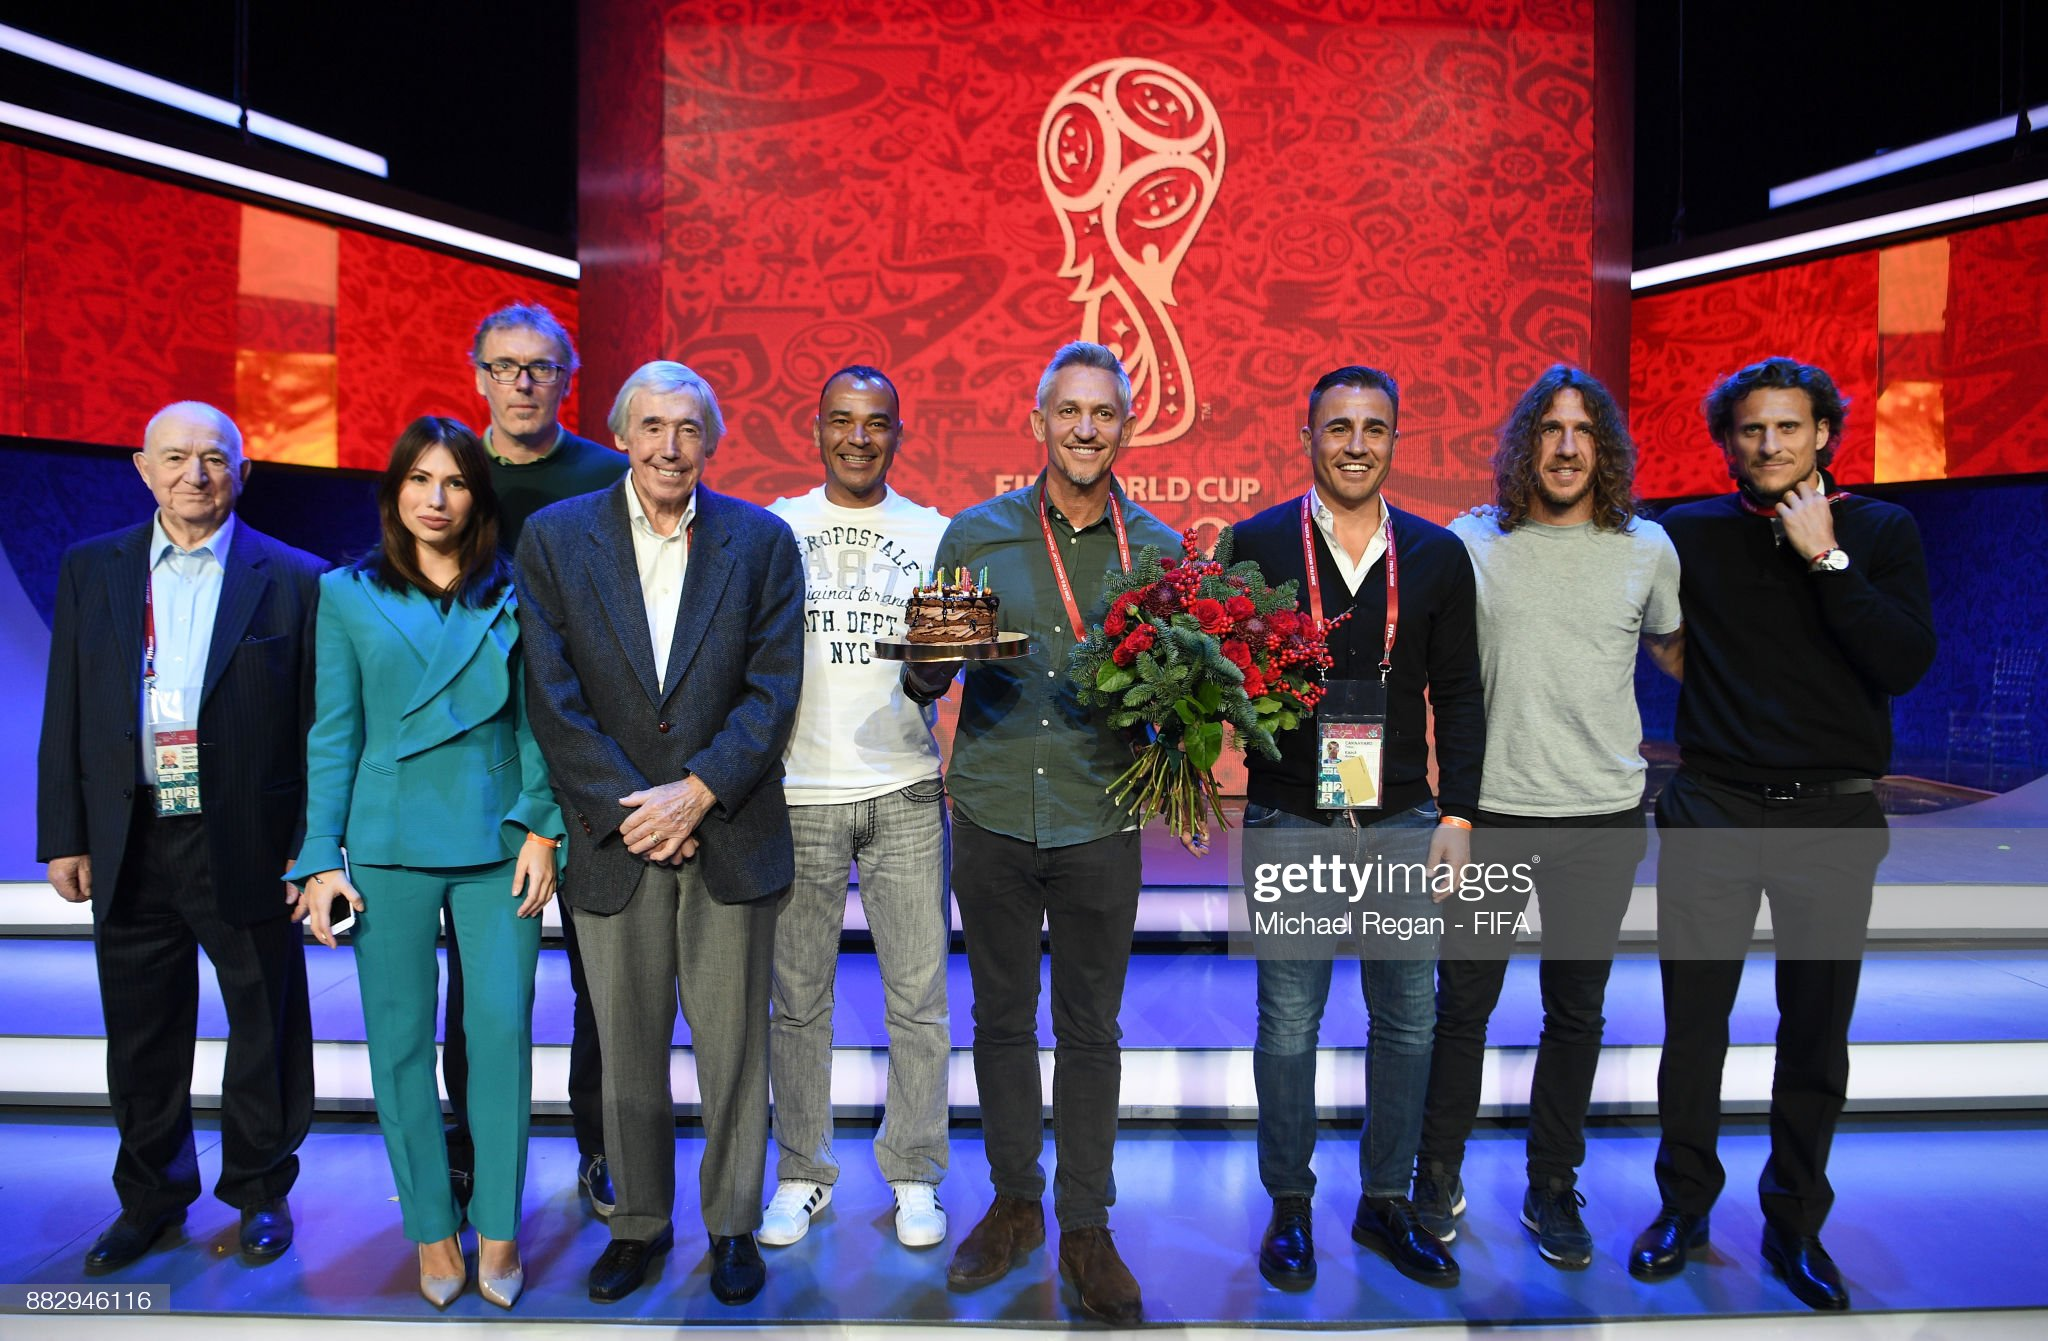 ¿Cuánto mide Carles Puyol? - Altura - Real height - Página 4 Conductor-gary-lineker-poses-with-his-birthday-cake-with-conductor-picture-id882946116?s=2048x2048